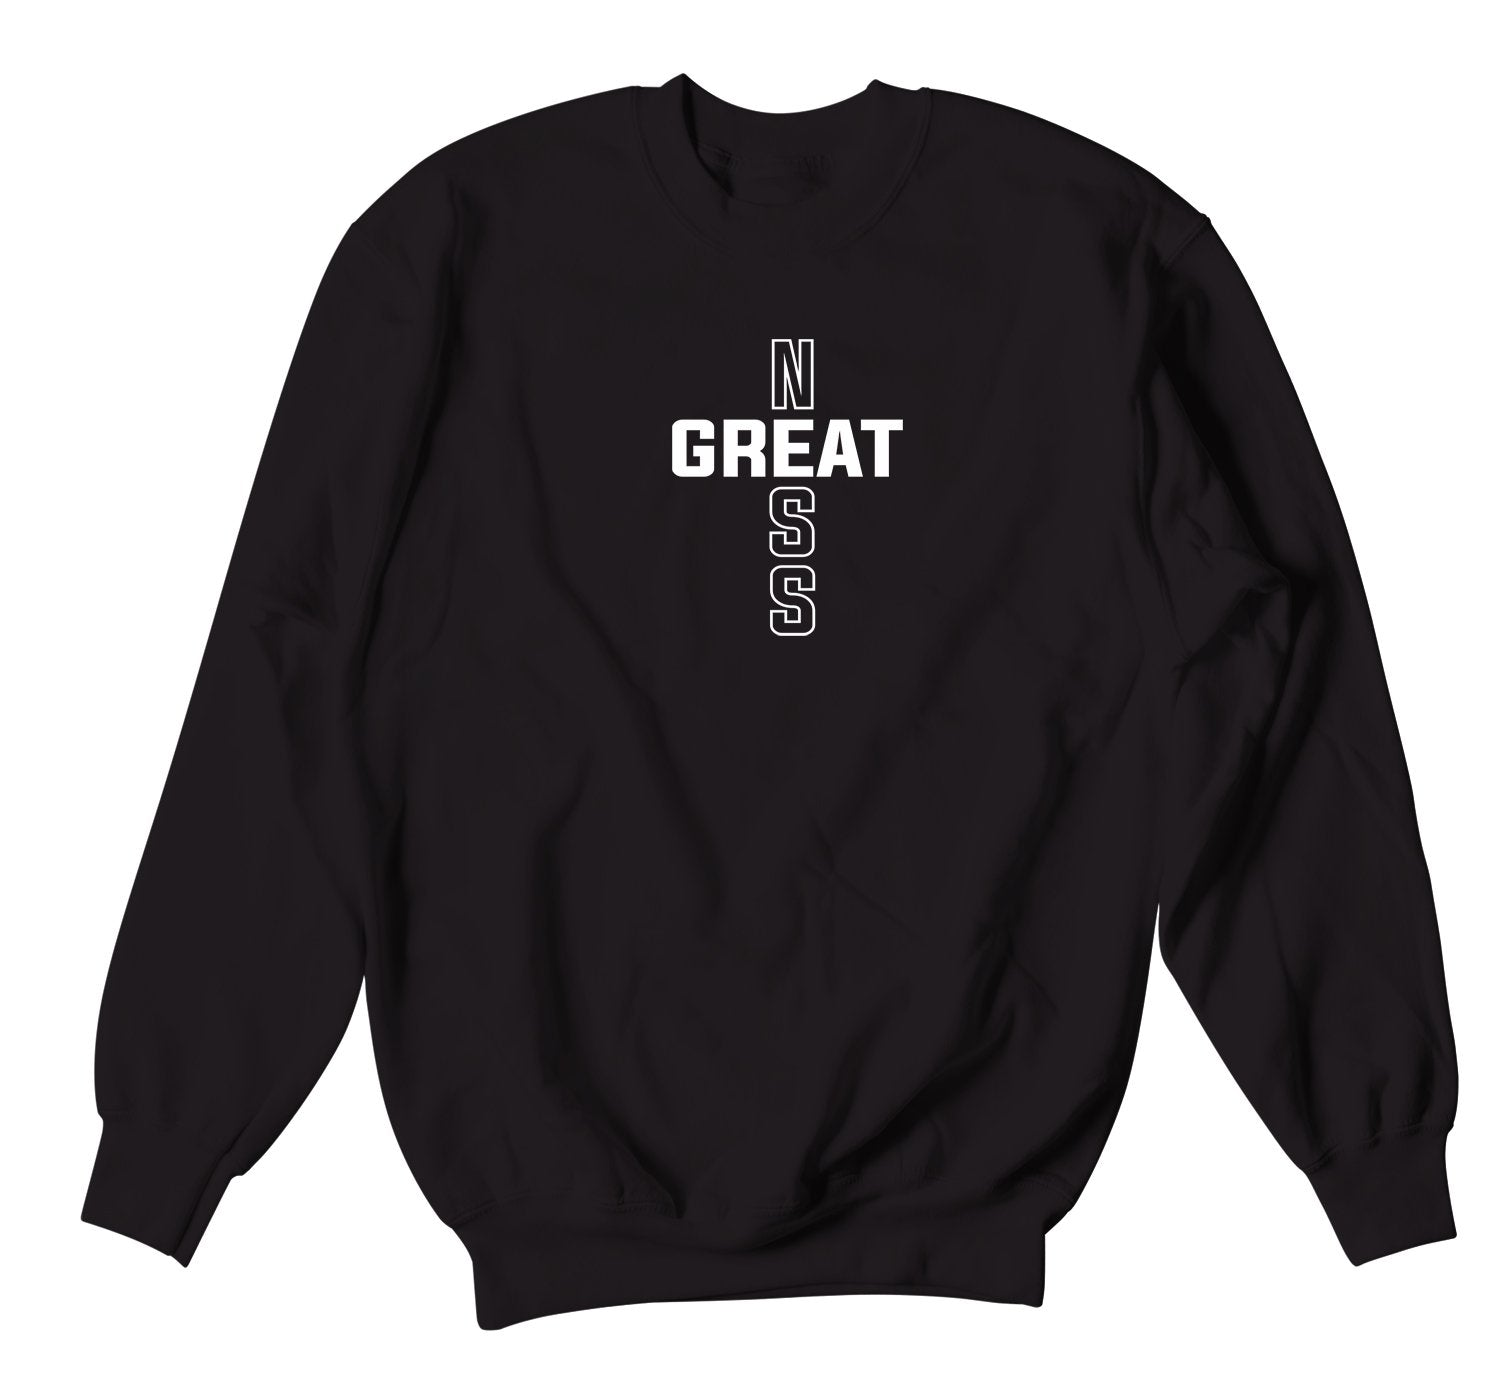 Greatest Sweaters Collection to match perfect with Pony Hair 4's